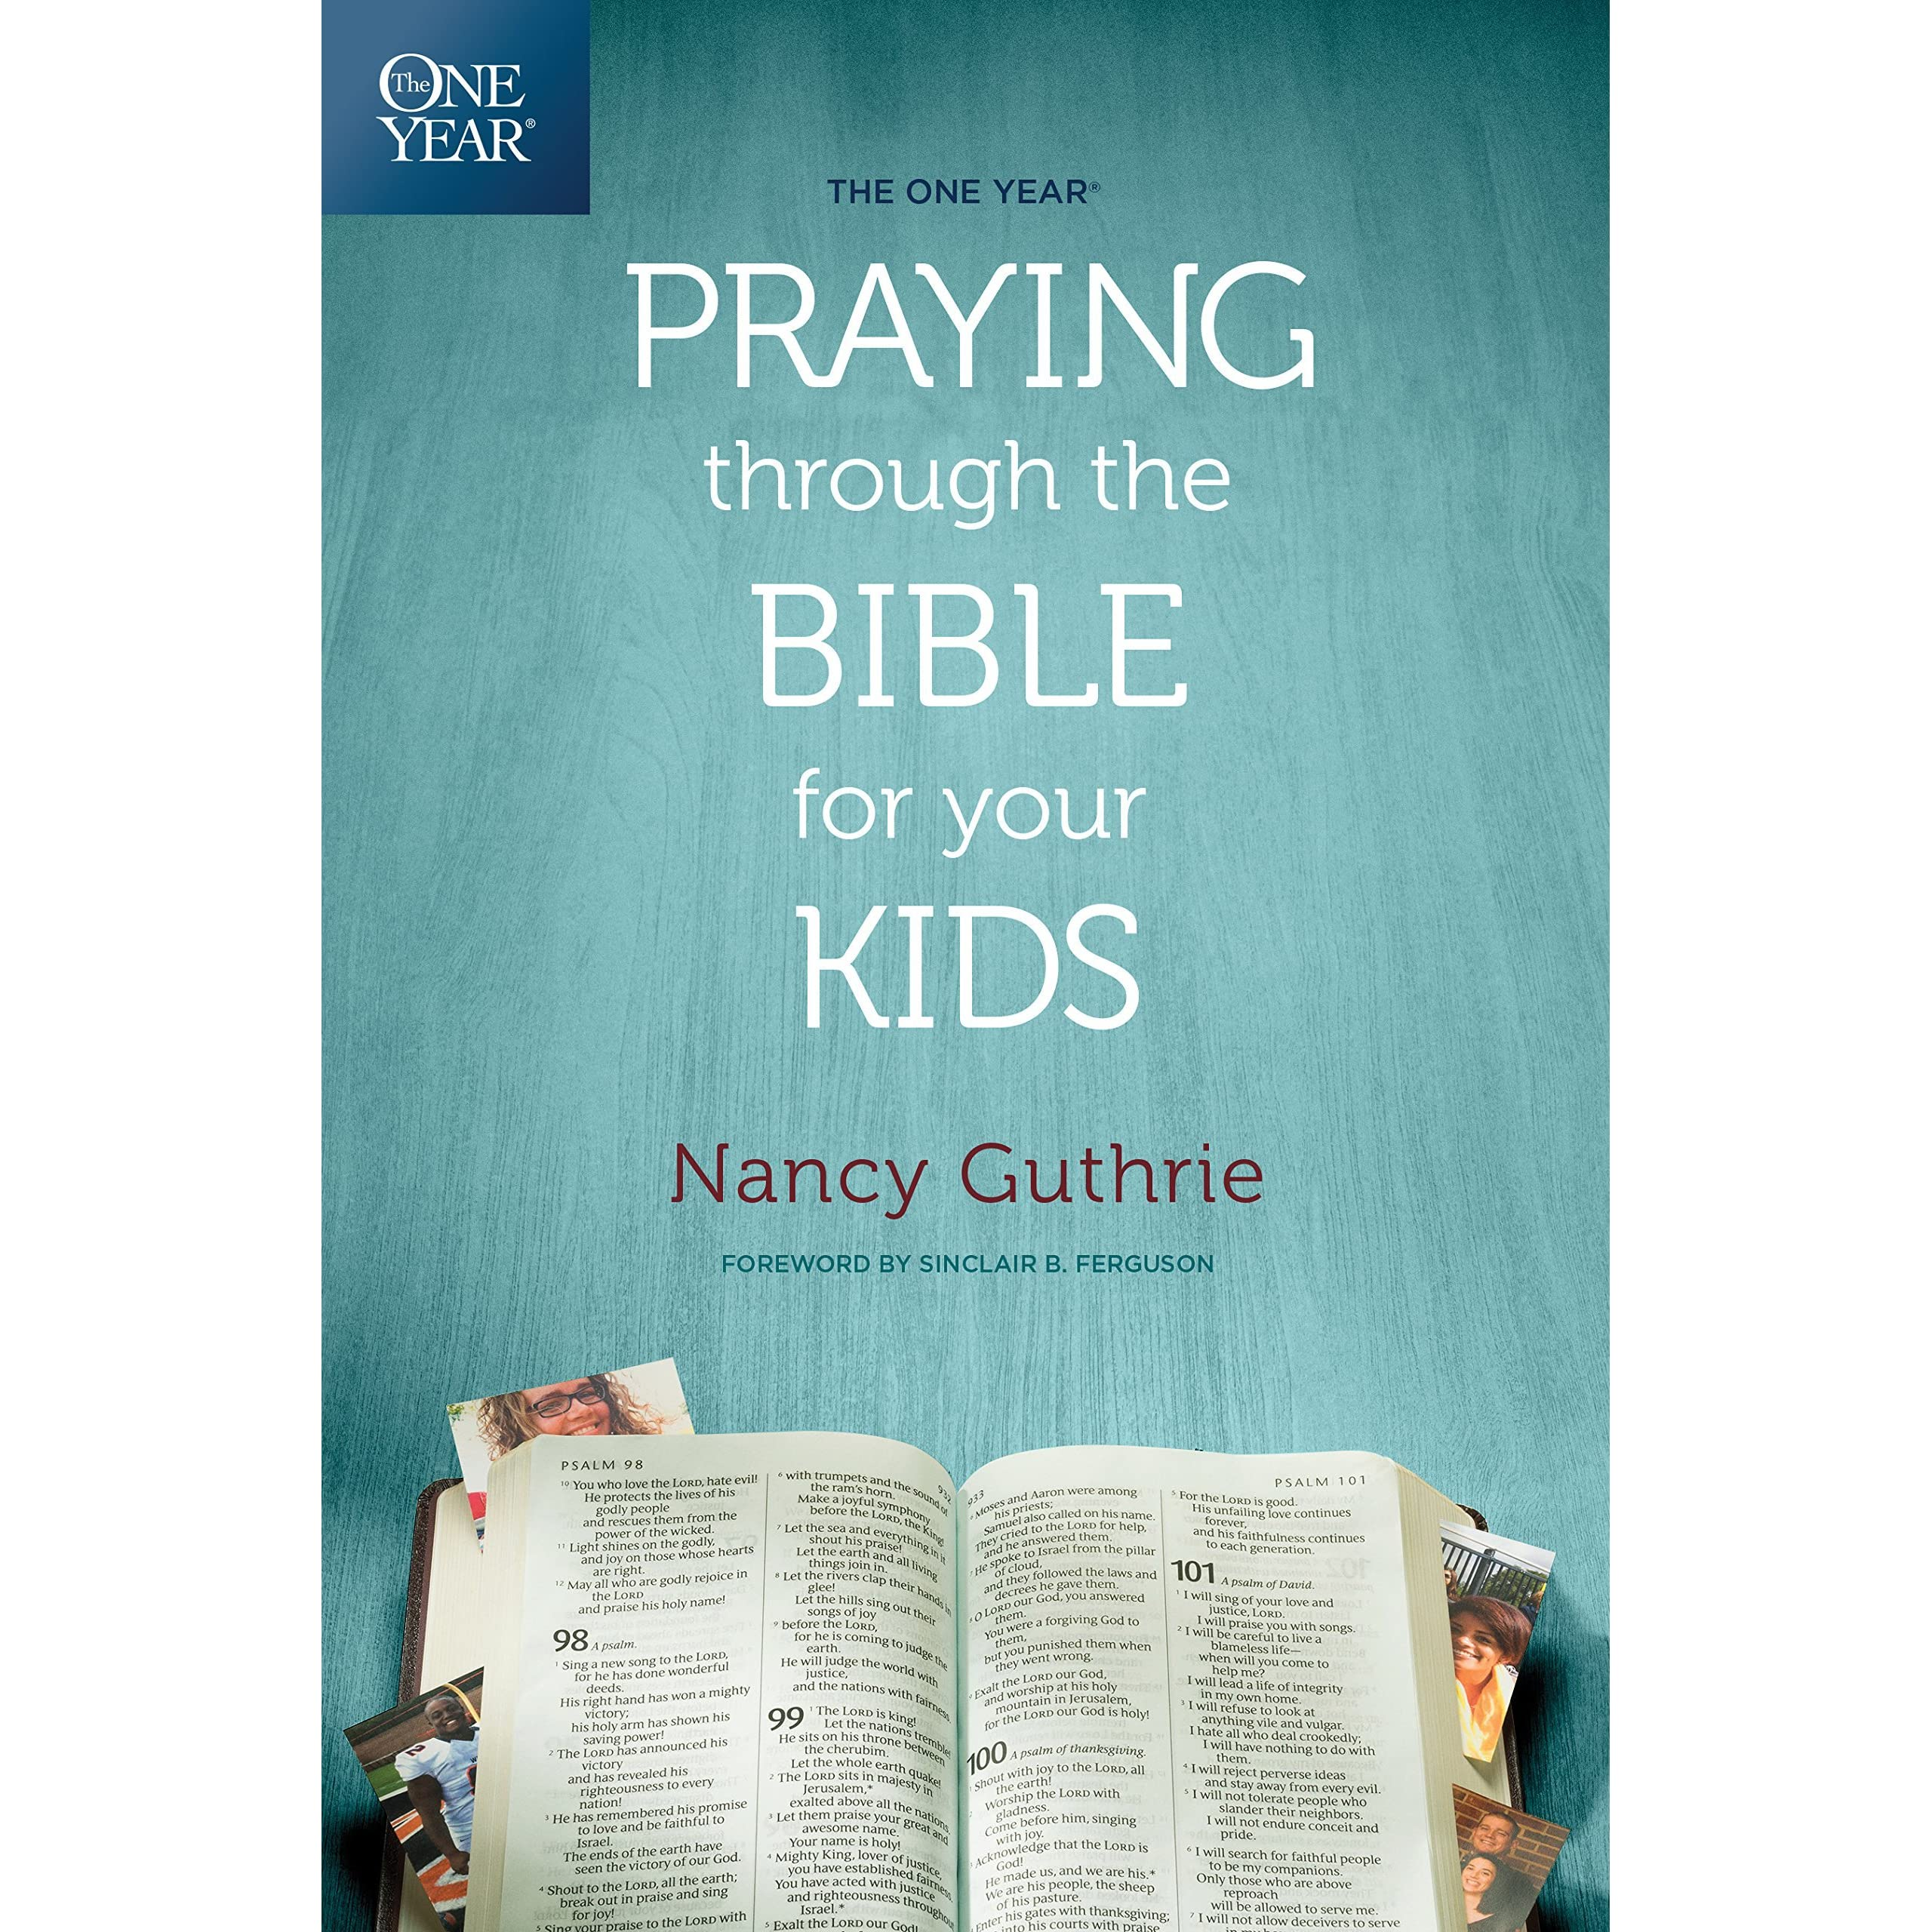 The One Year Praying Through the Bible for Your Kids by